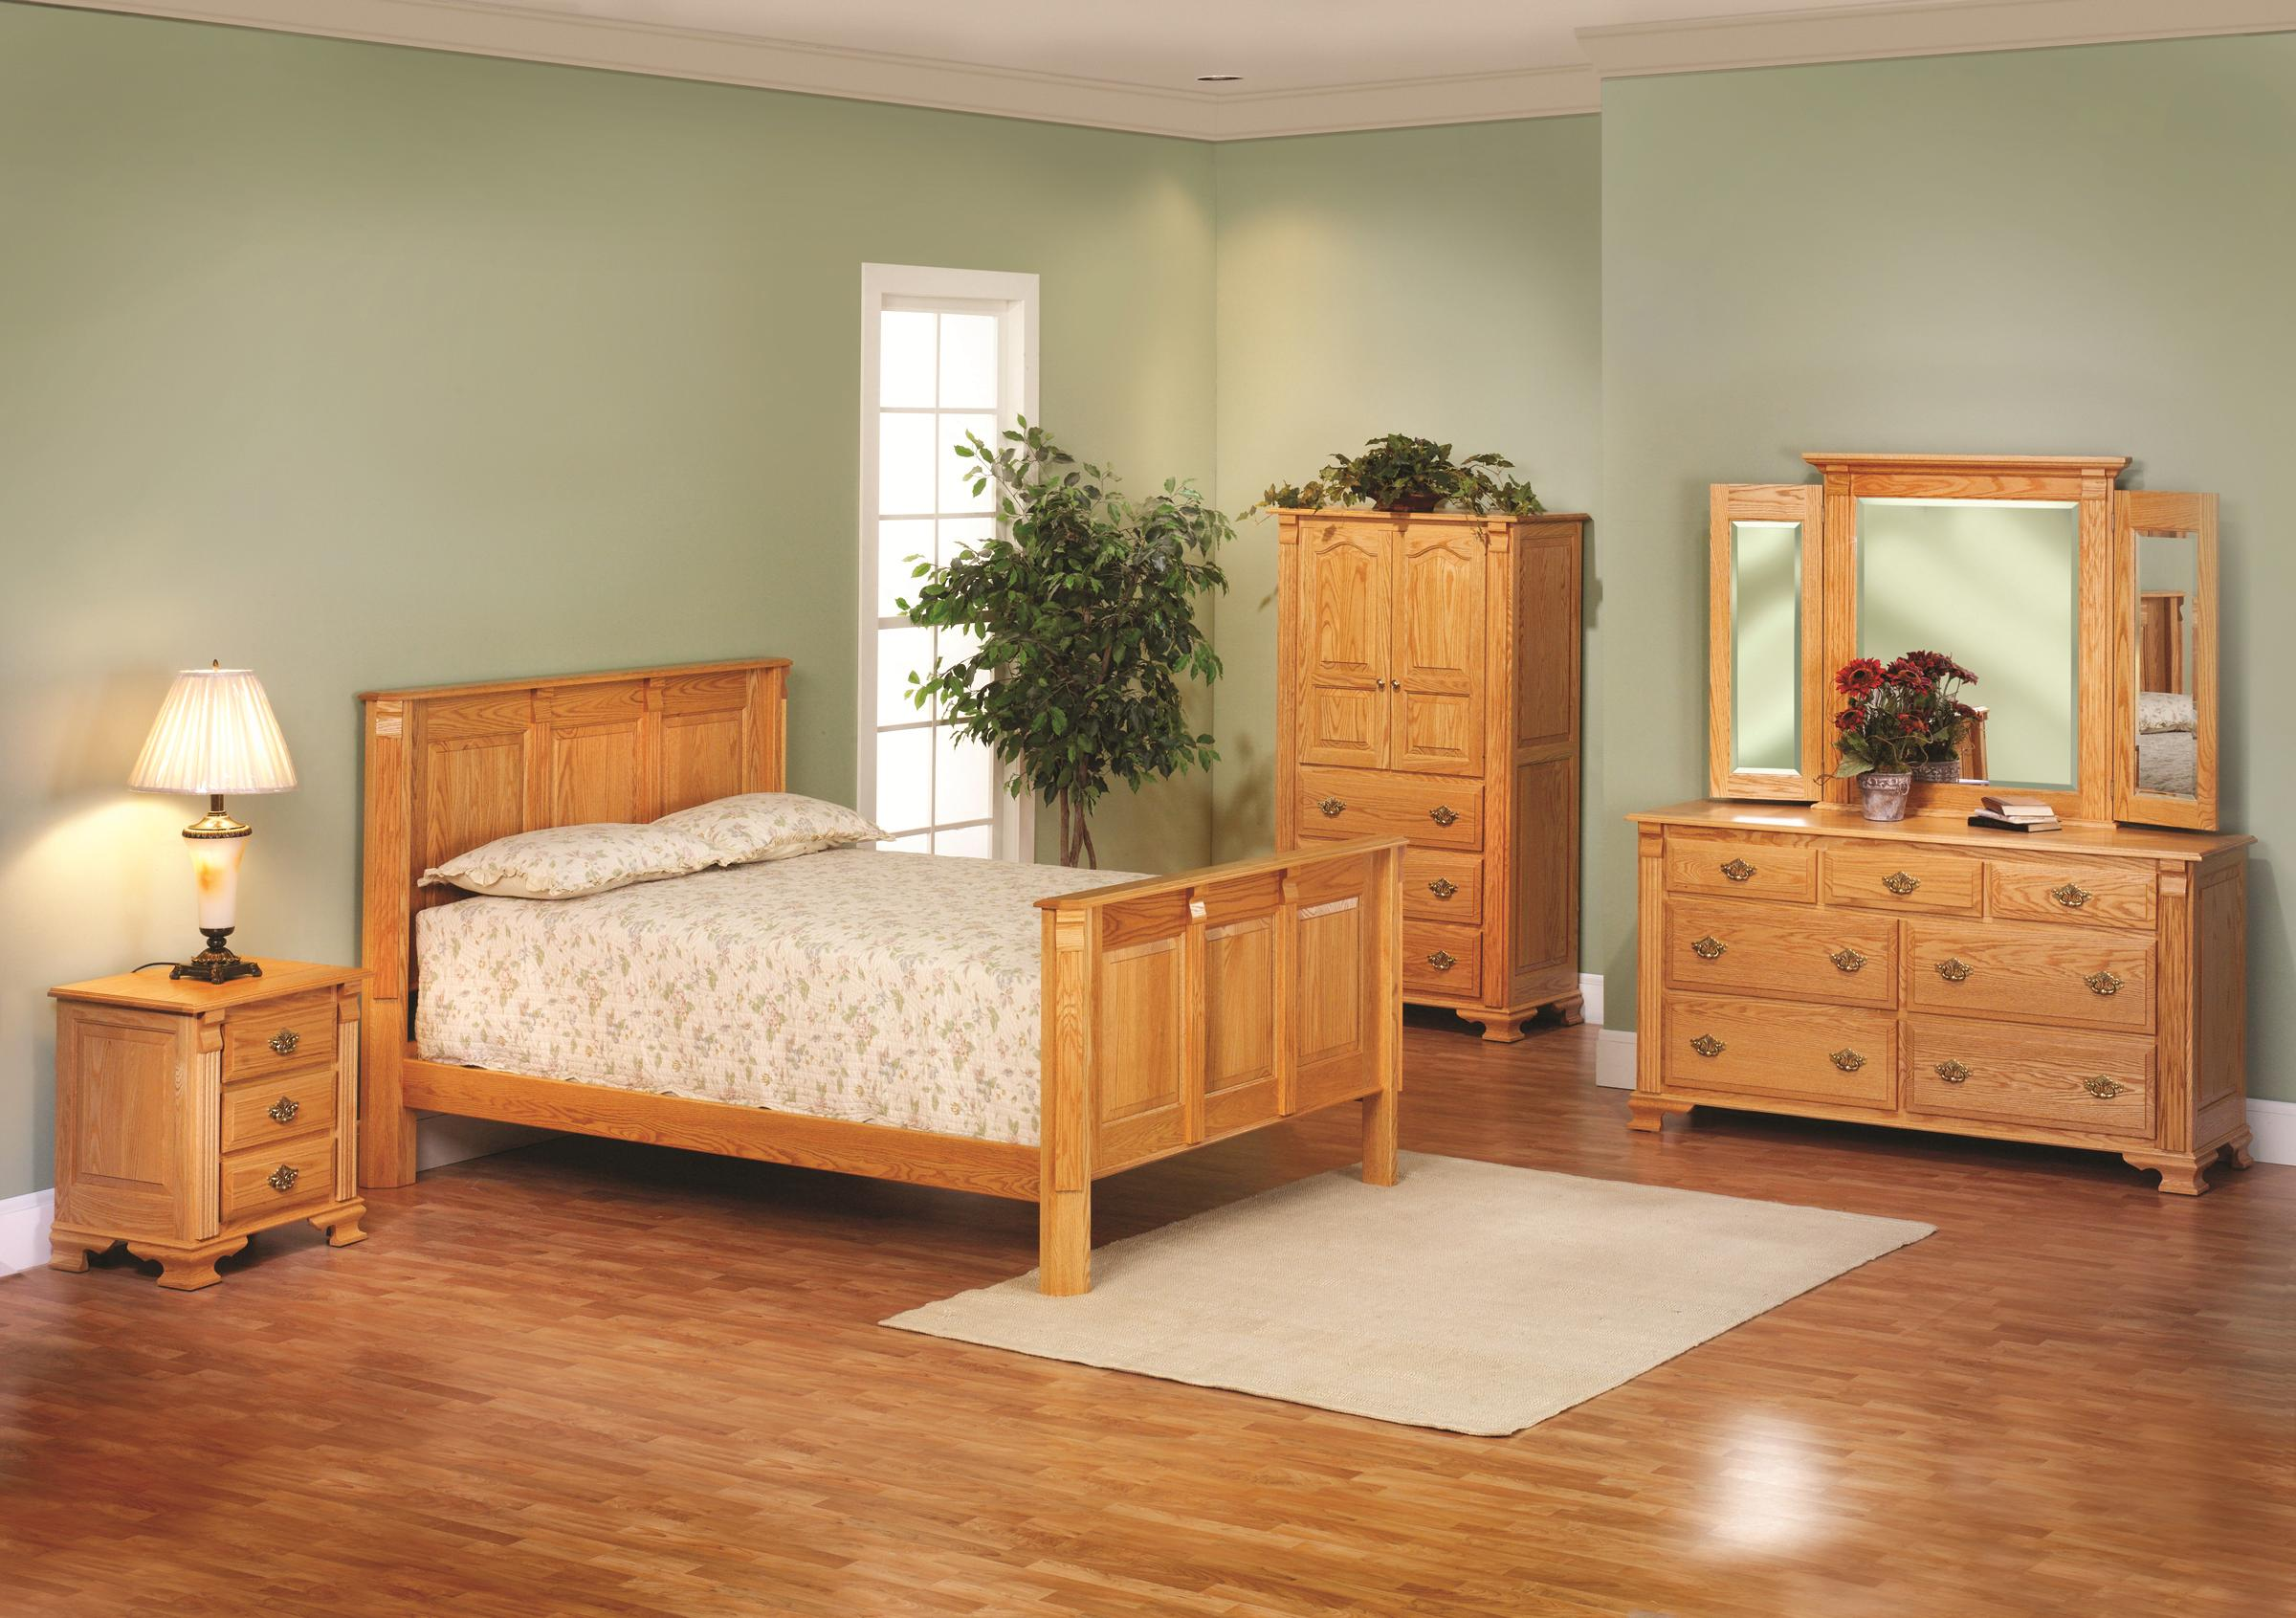 Journeys End Full Bedroom Group 1 by Millcraft at Saugerties Furniture Mart